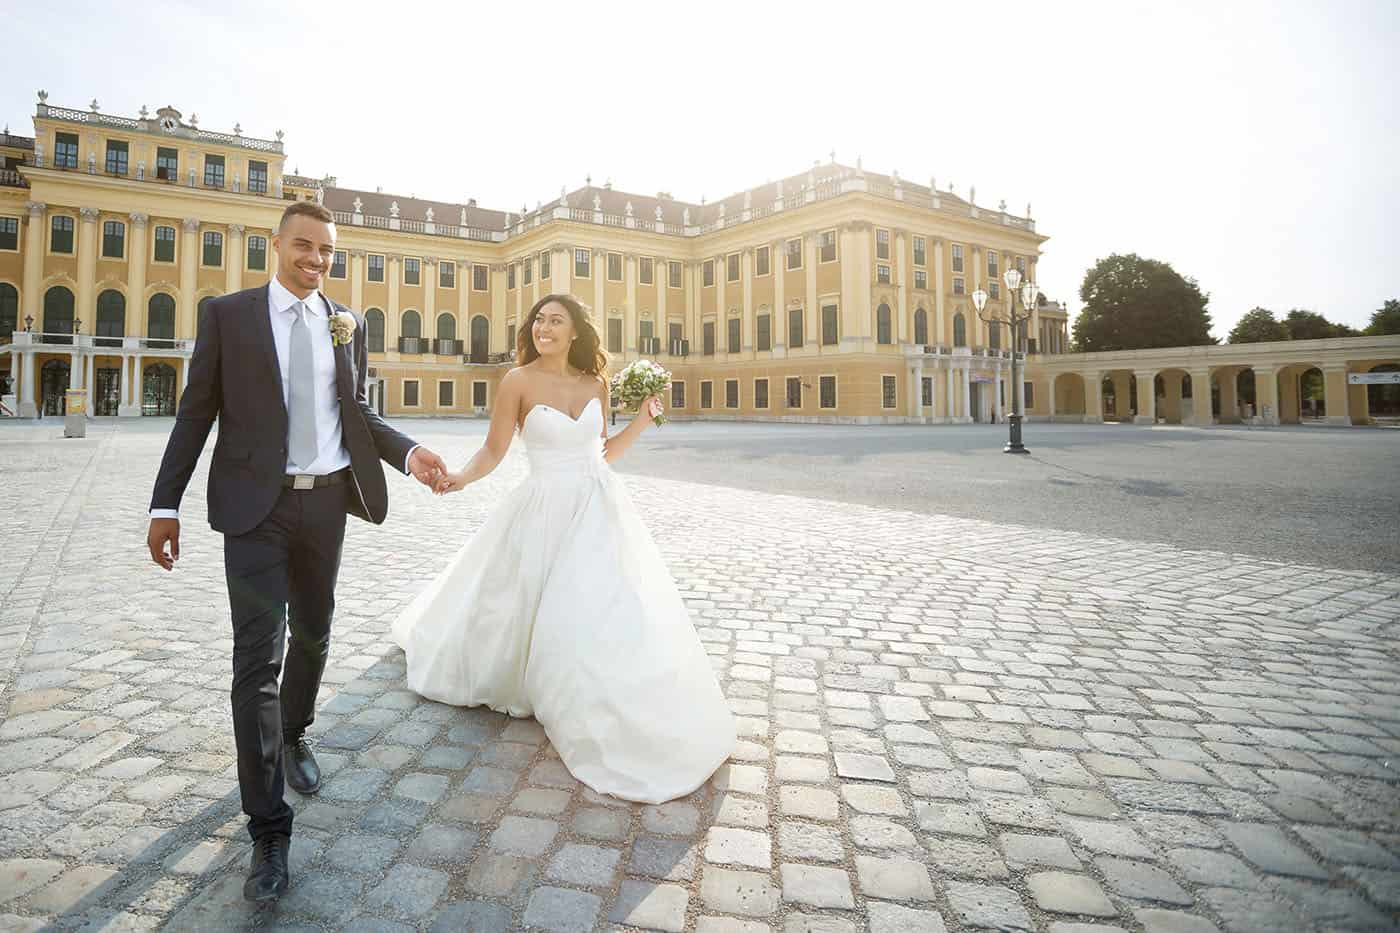 This is the Key to Amazing Client Relationships | A bride and groom stroll through a massive stone courtyard as the sun pours over them.